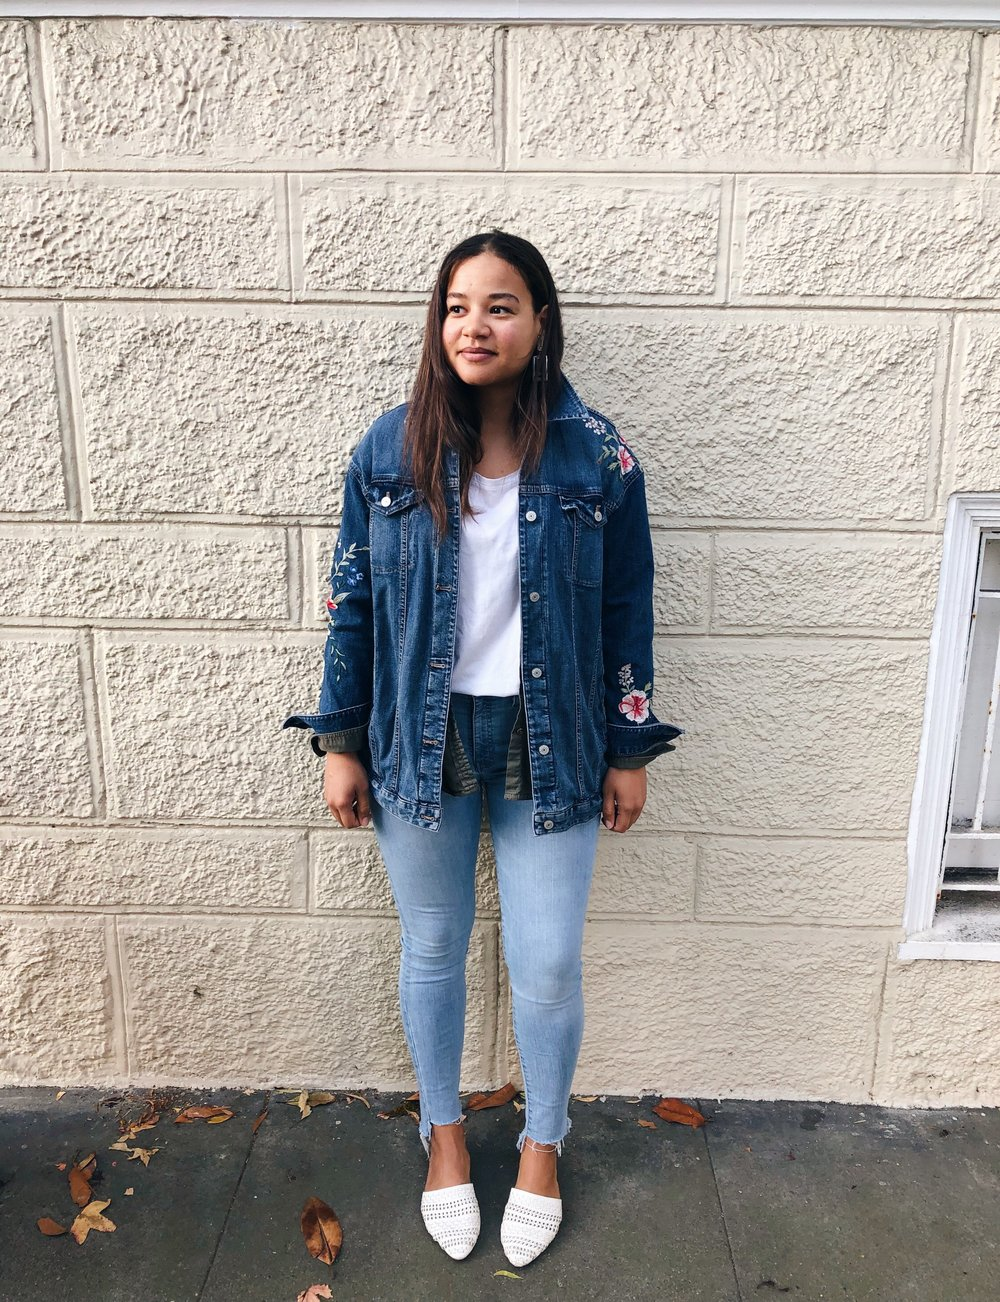 Jacket: thrifted at Buffalo Exchange (originally Express) | Collared shirt: Banana Republic | T-shirt: Old Navy | Jeans: Madewell | Flats: Gap | Earrings: bought on the street in NYC 1,000 years ago